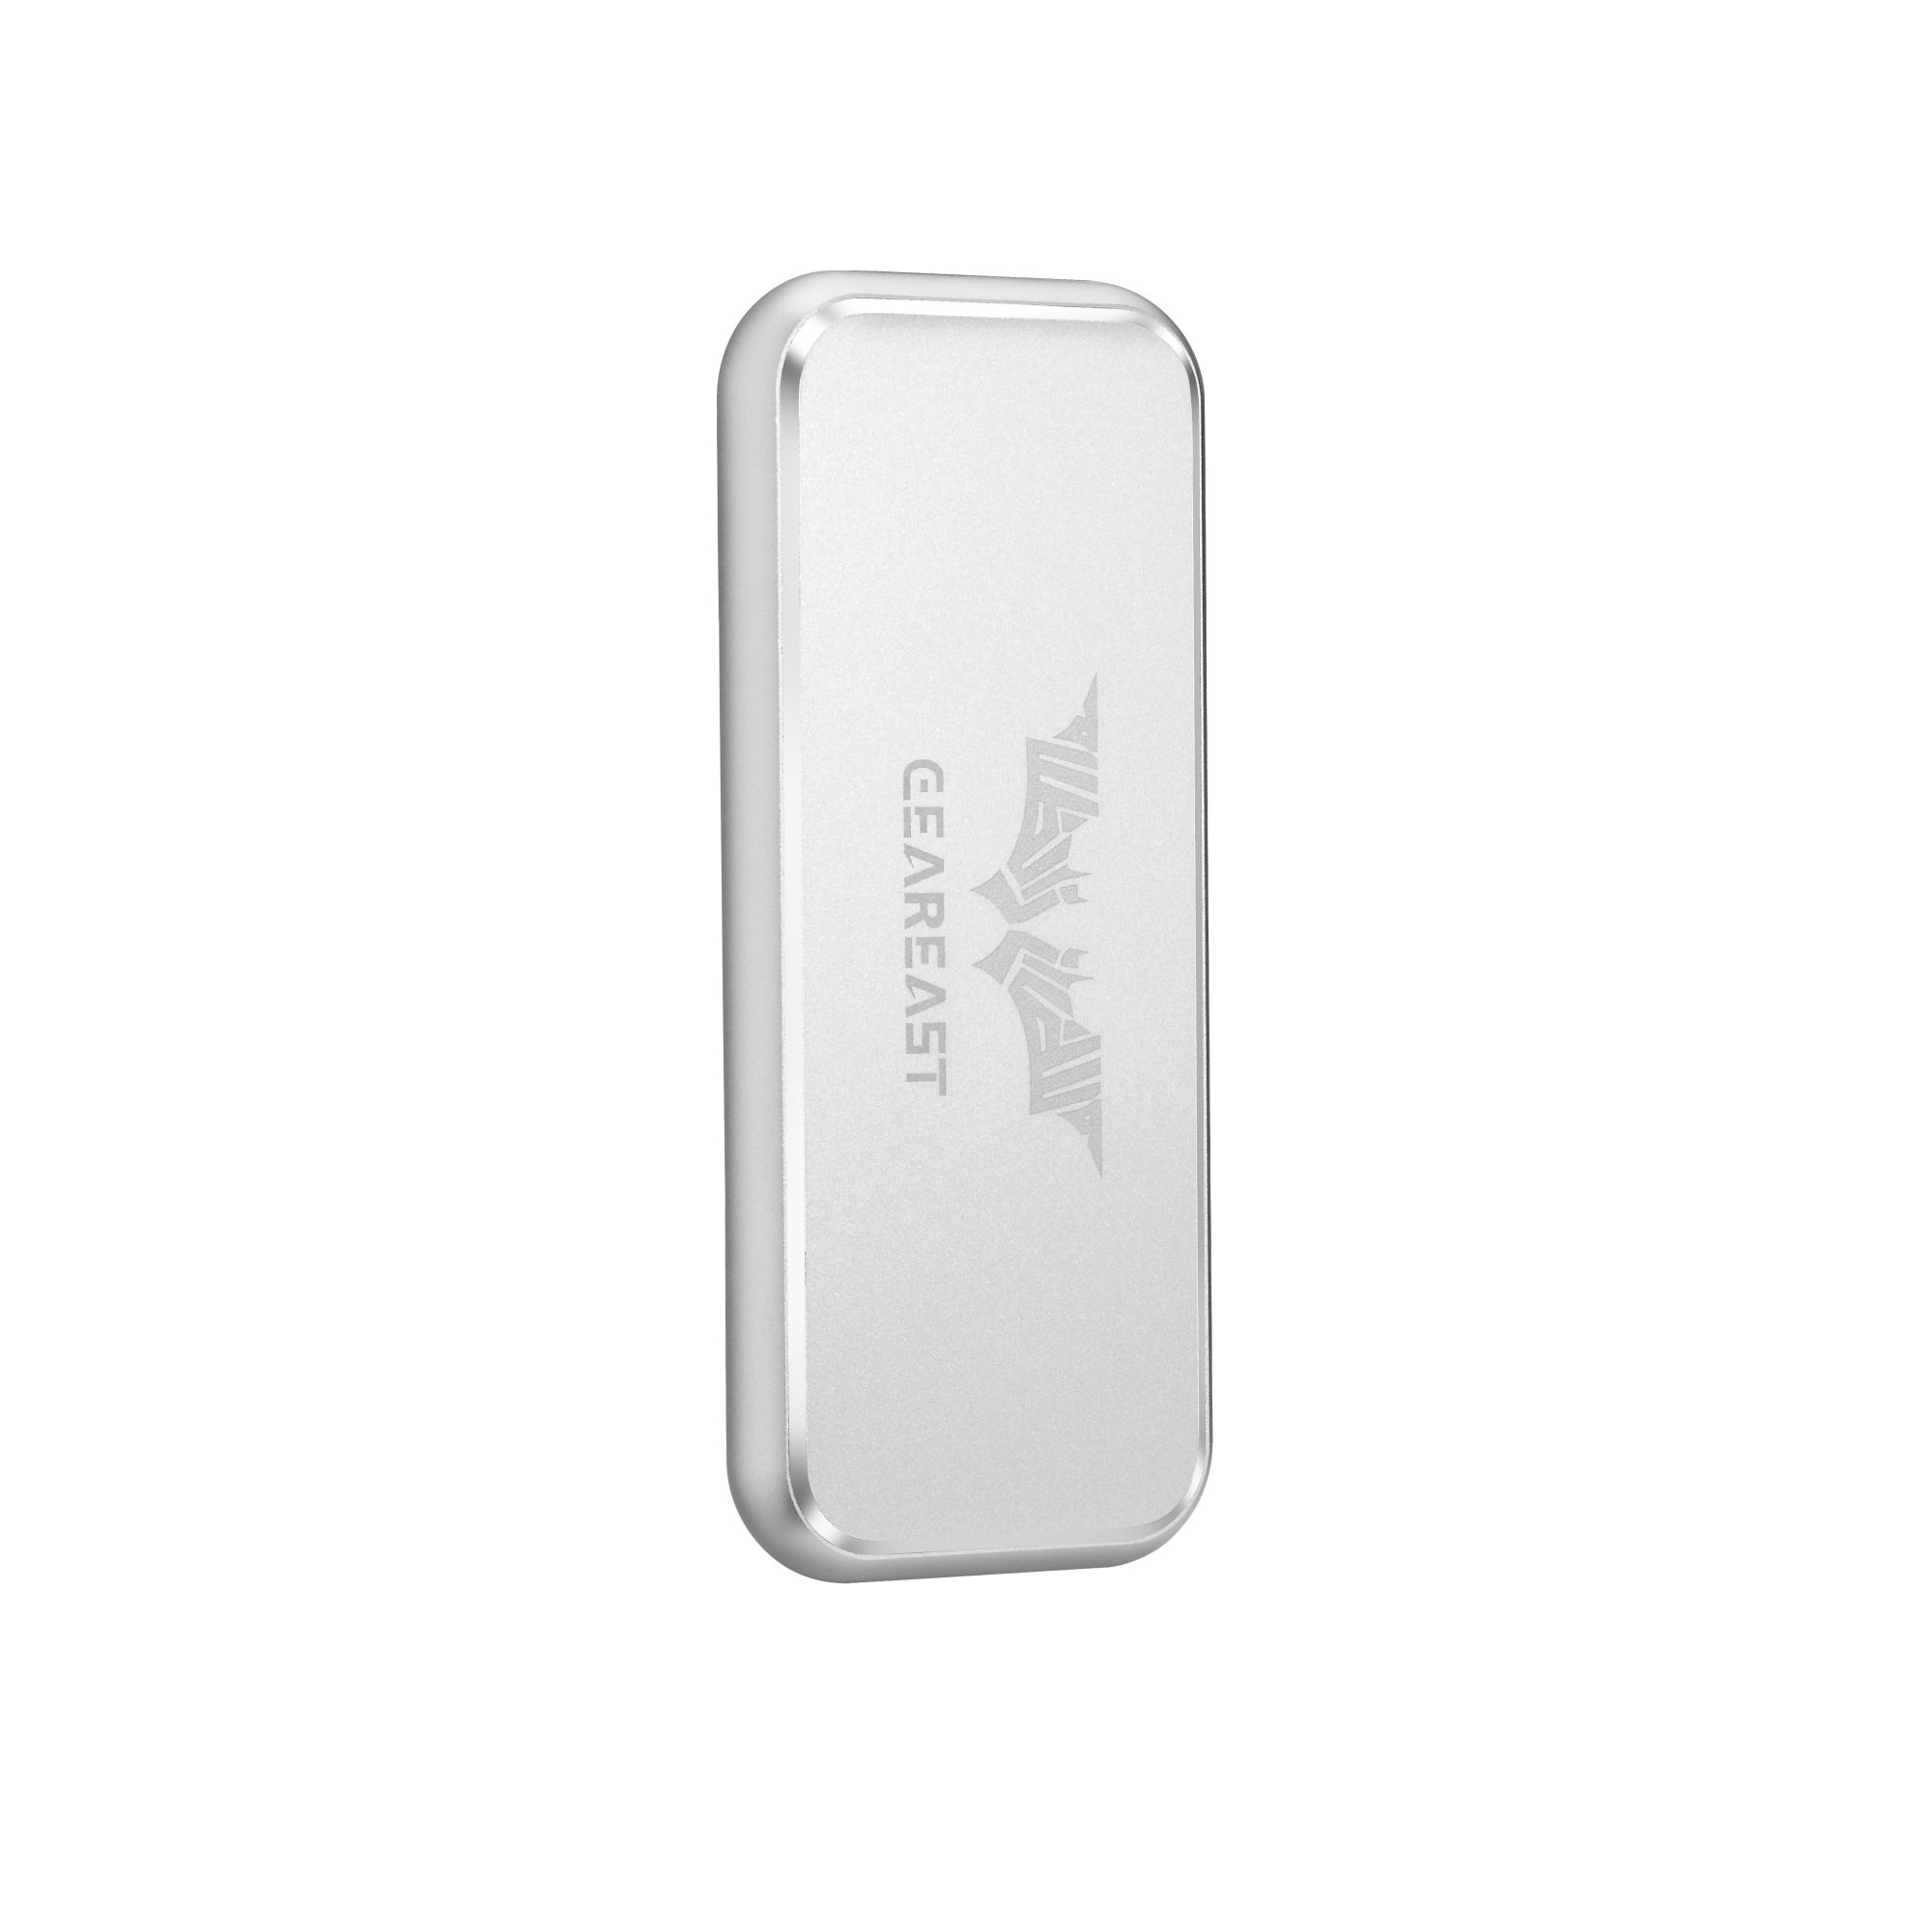 Gloway-disque dur Mobile Interface usb Type <span class=keywords><strong>c</strong></span>, 256 go, <span class=keywords><strong>SSD</strong></span>, Sata intégré, pour voiture